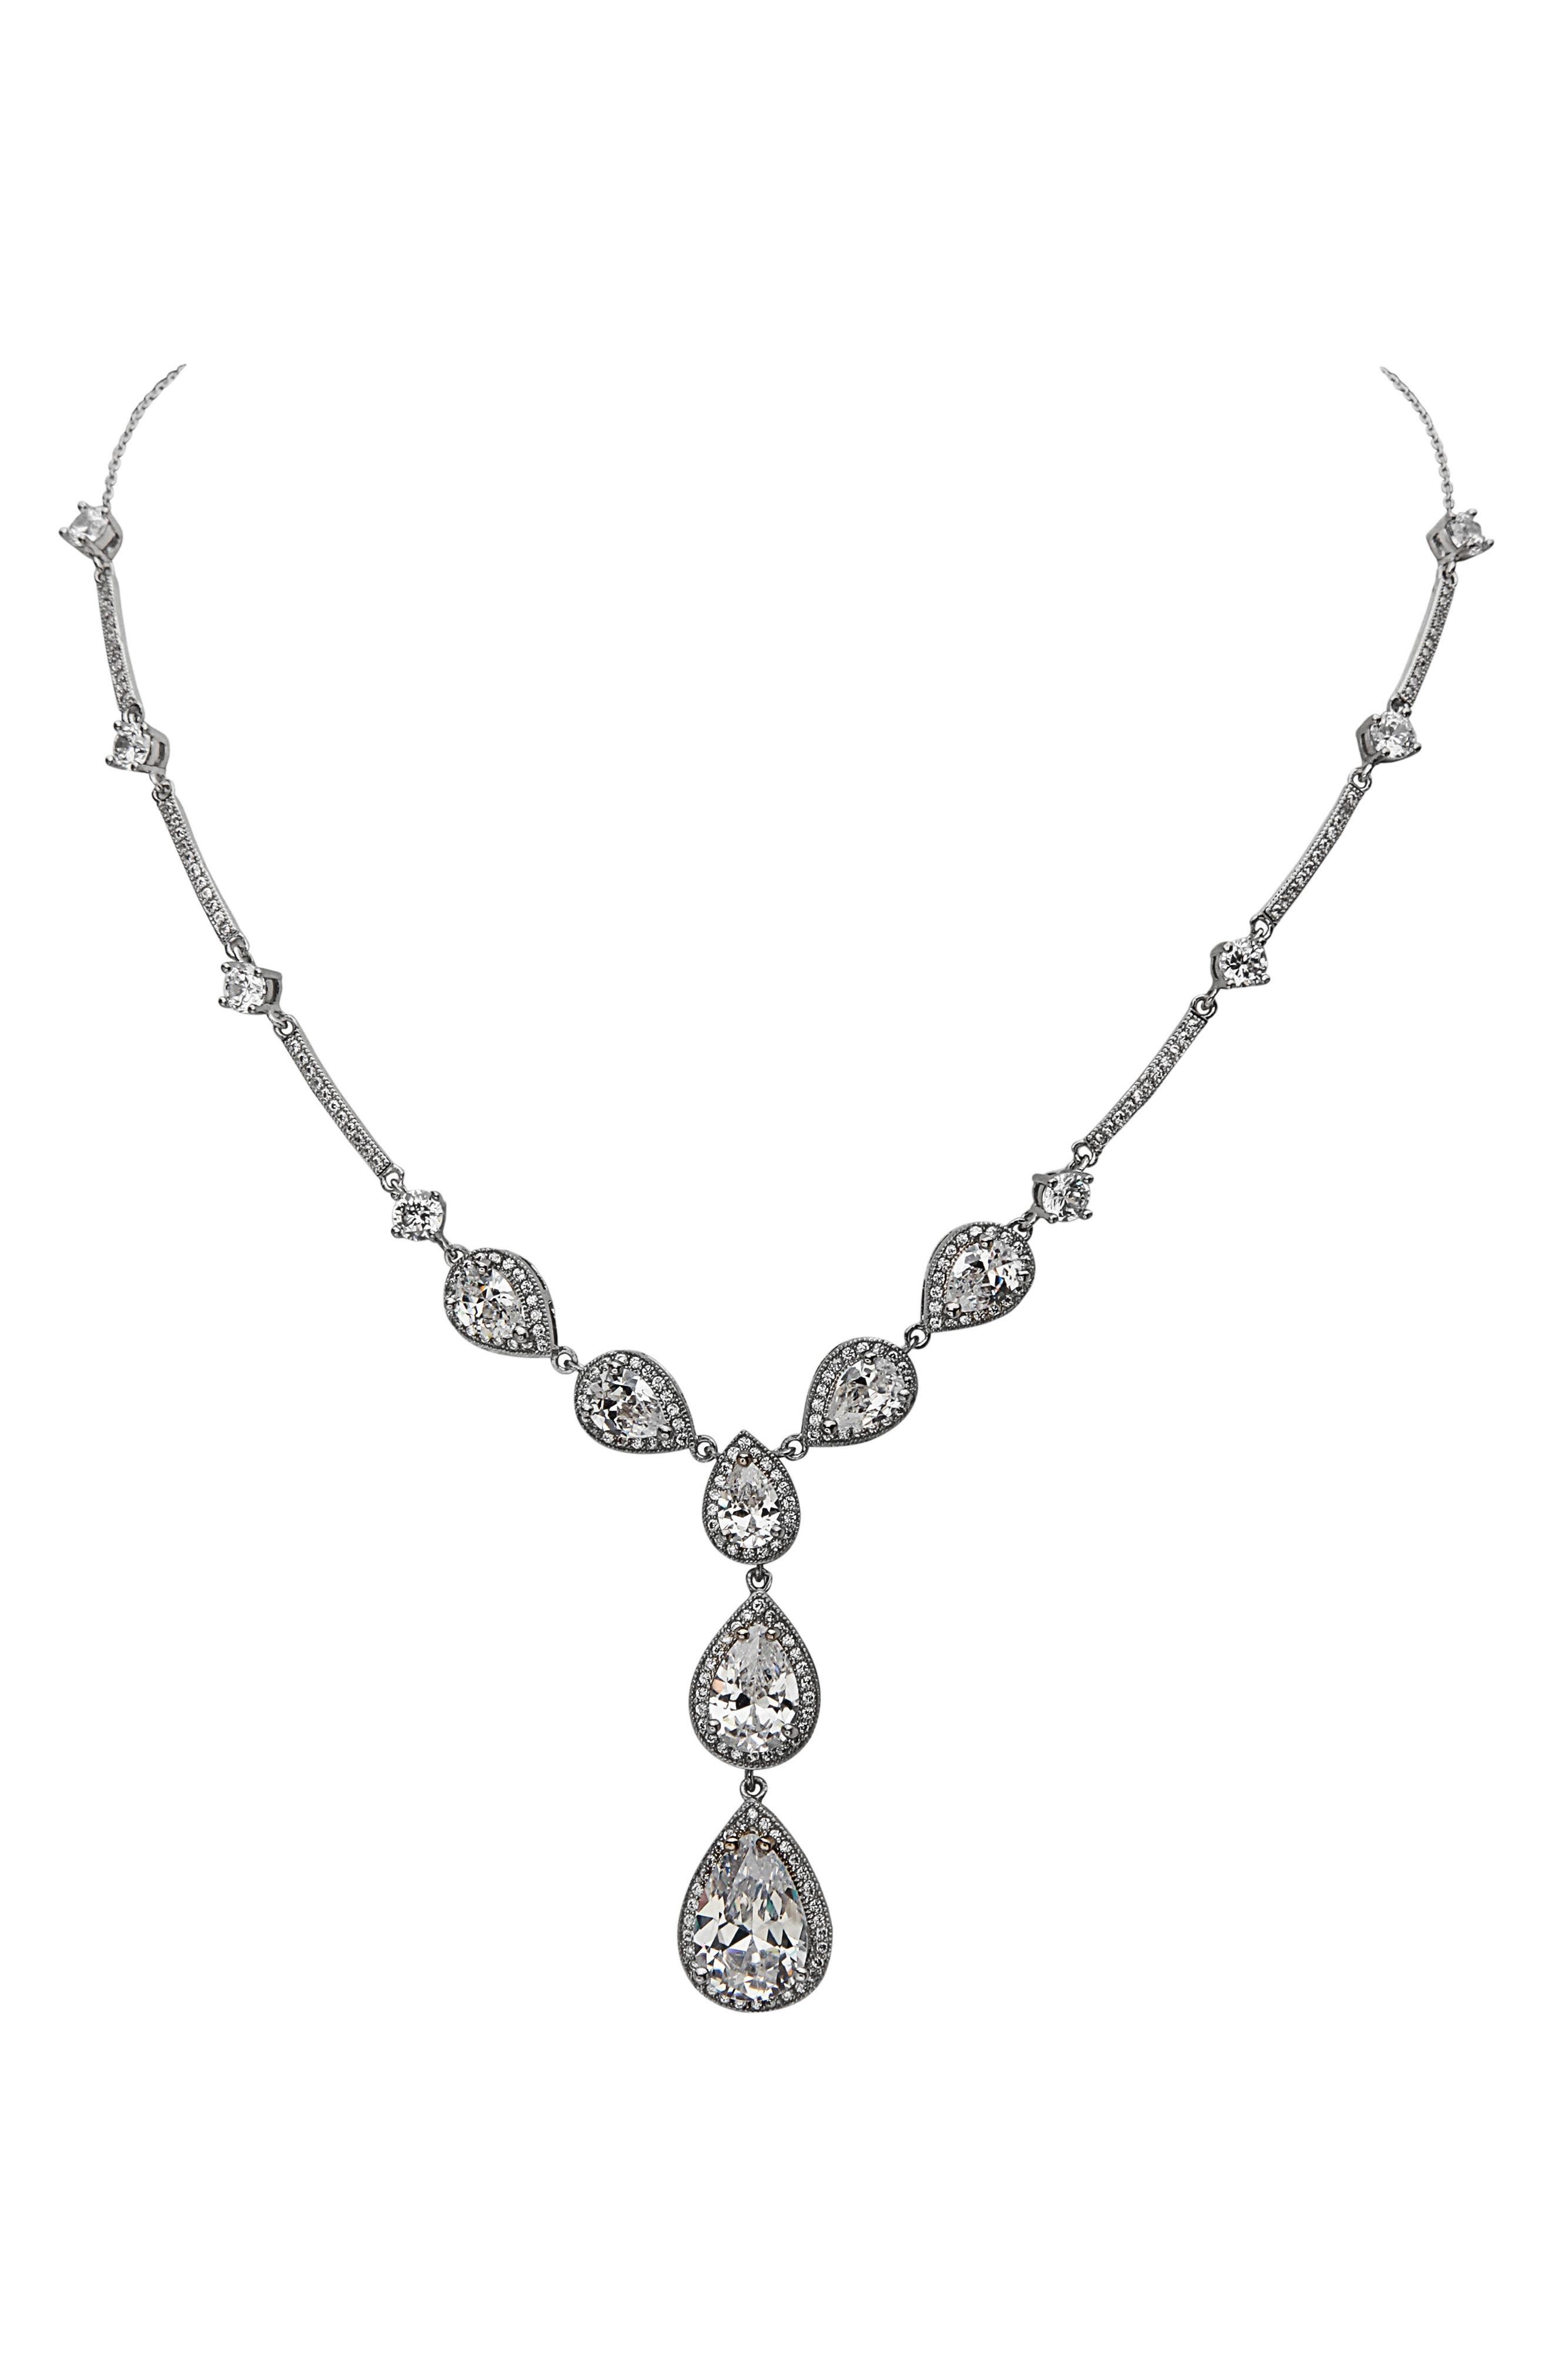 Station Y-Necklace,                             Main thumbnail 1, color,                             040